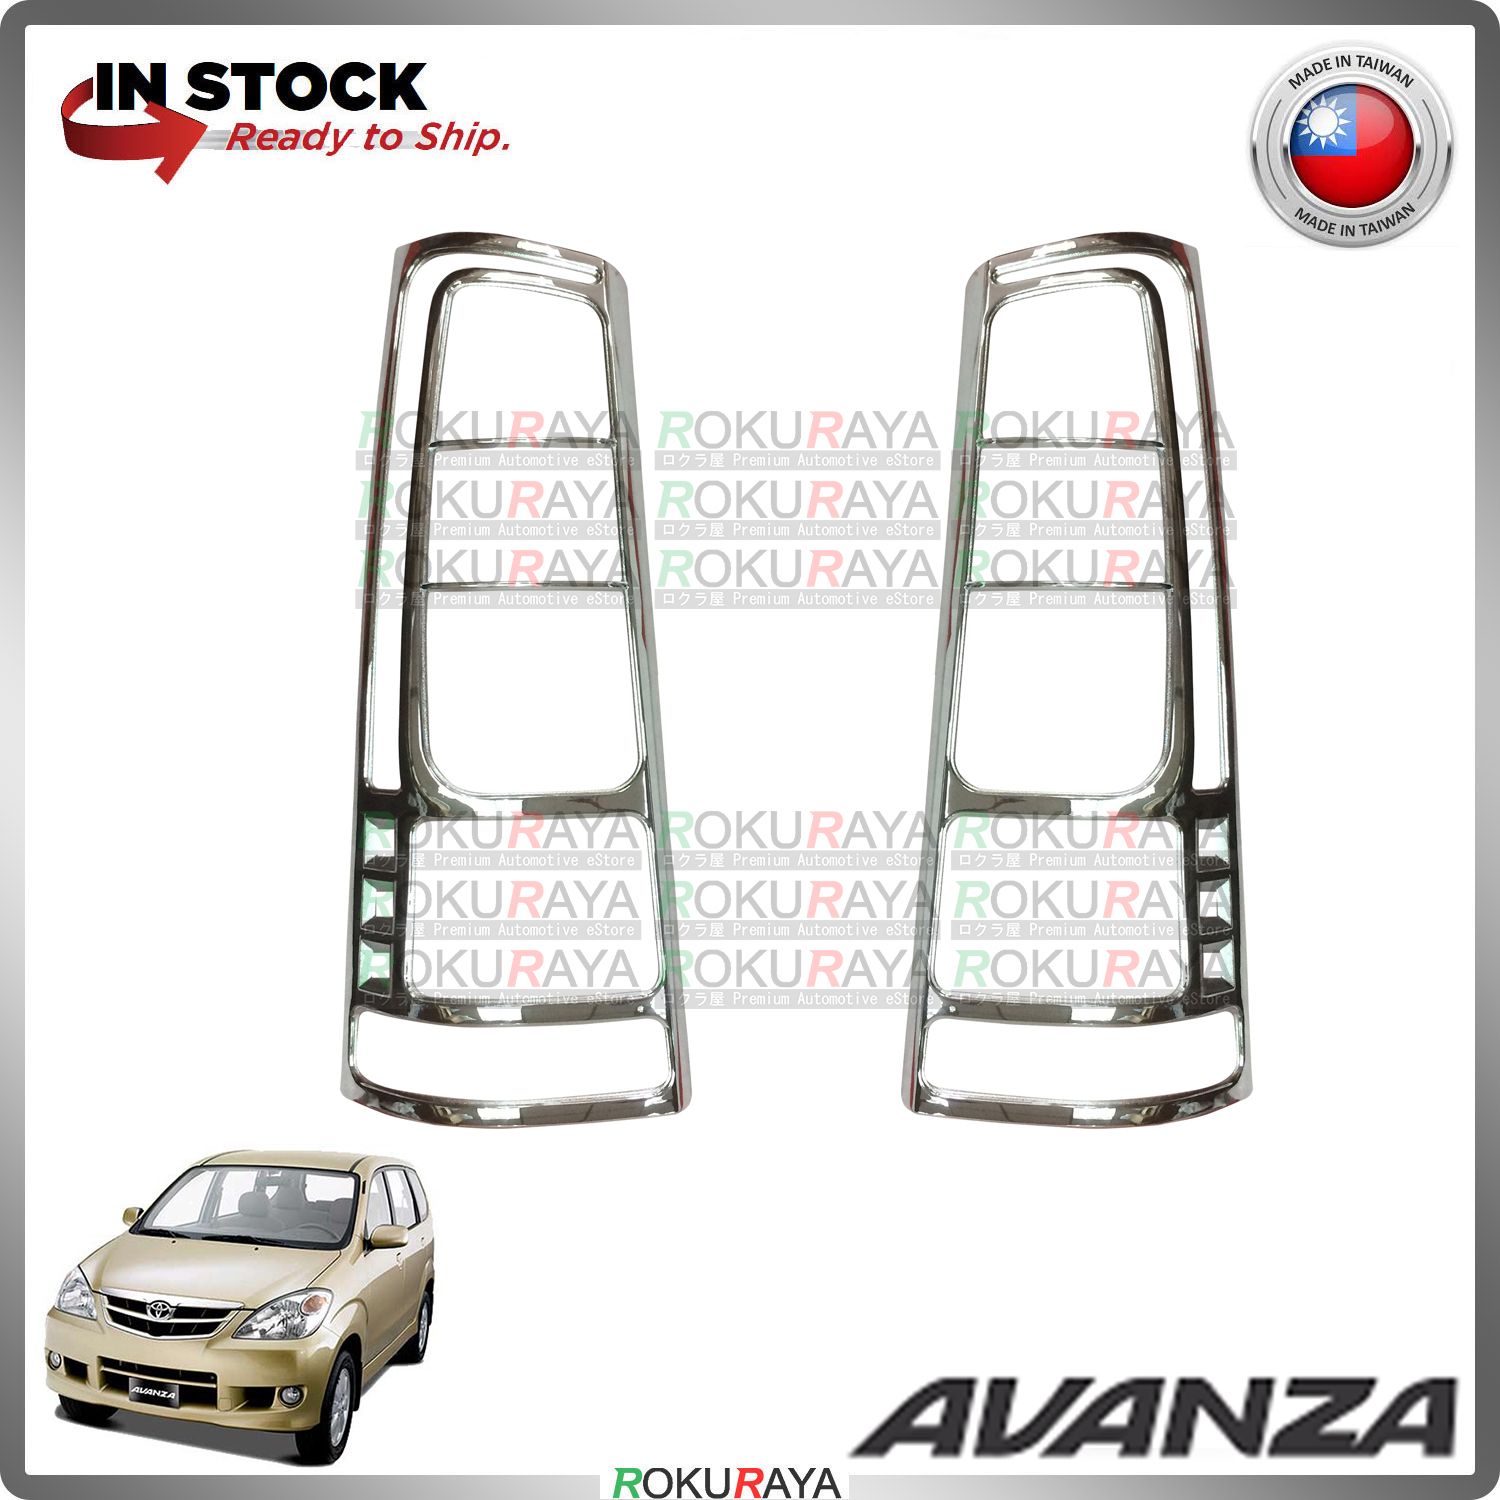 [CHROME] Toyota Avanza Old 2003-2007 ABS Plastic Rear Tail Lamp Garnish Moulding Cover Trim Car Accessories Parts